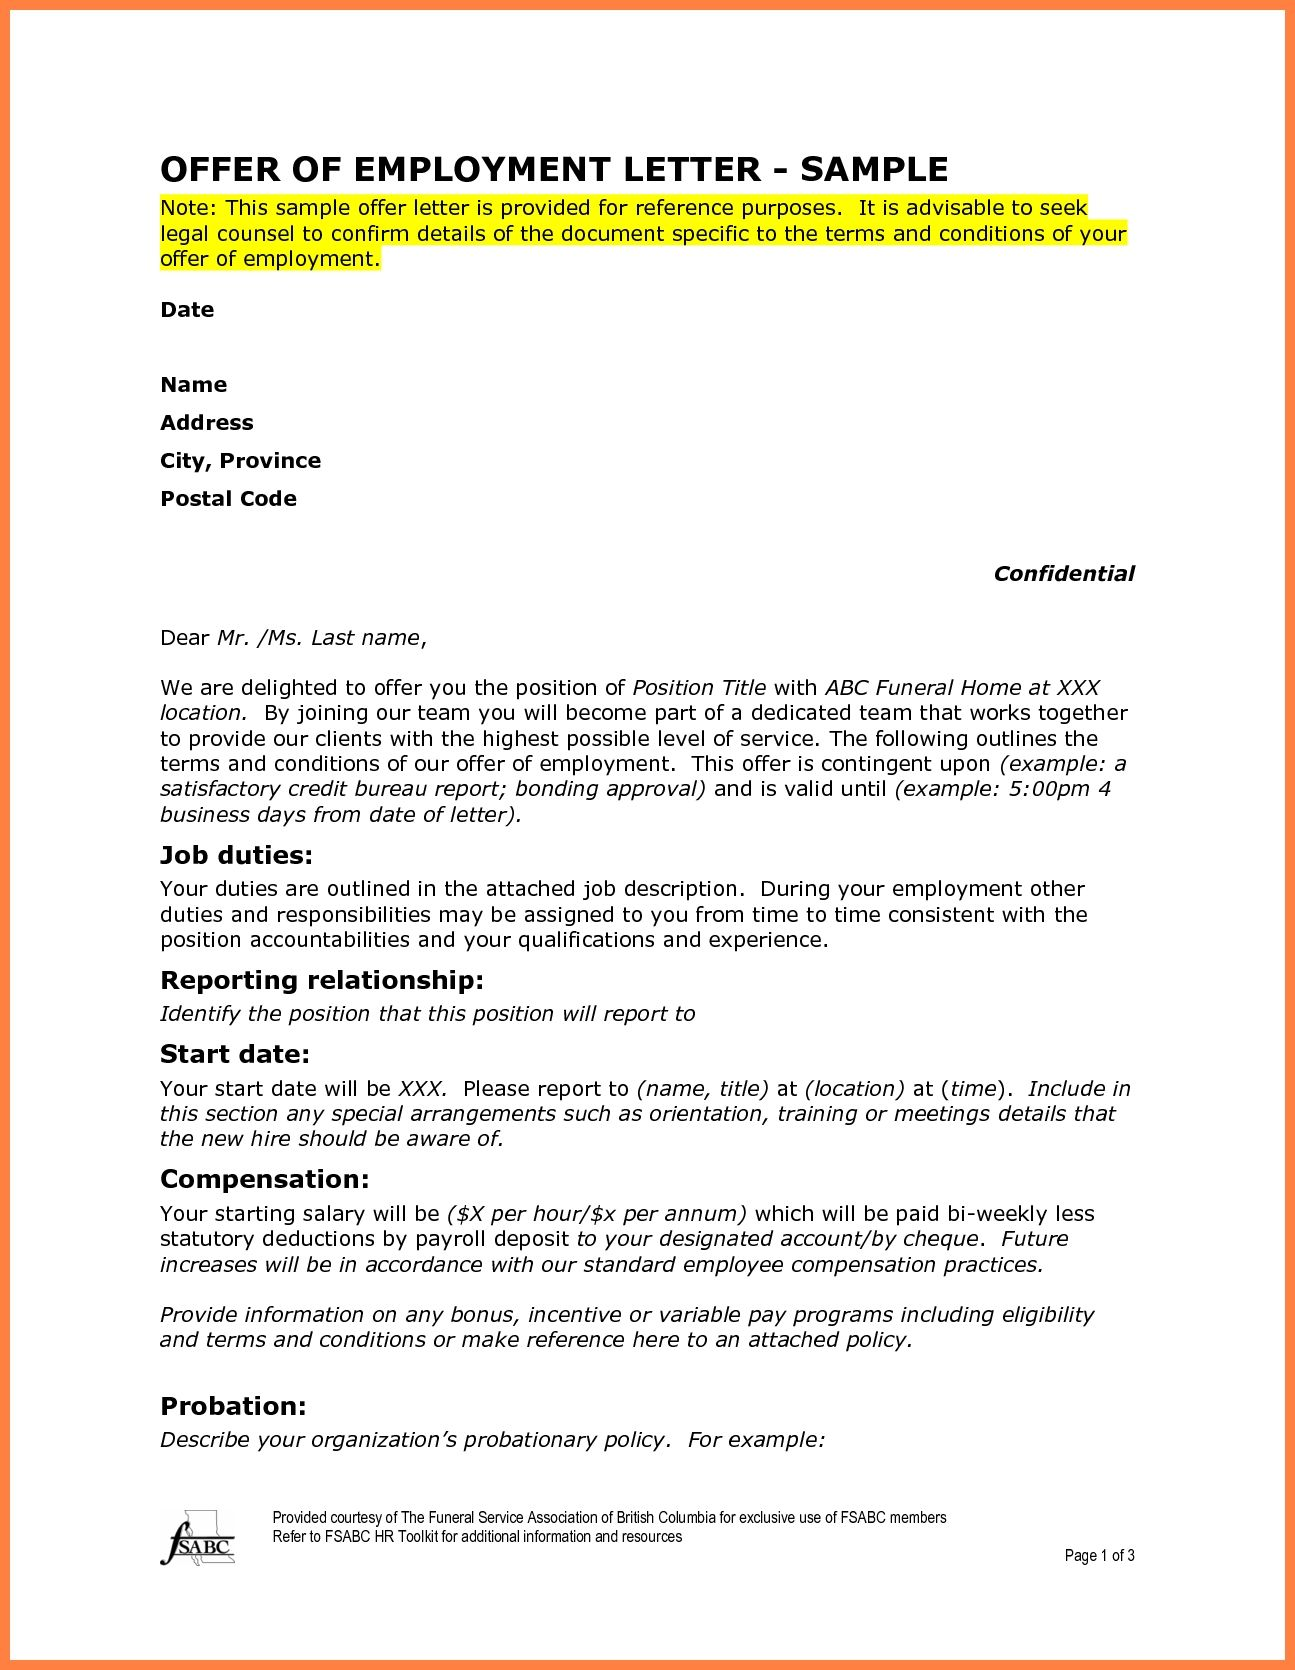 Employment Offer Letter Template Best Business Sample Marital